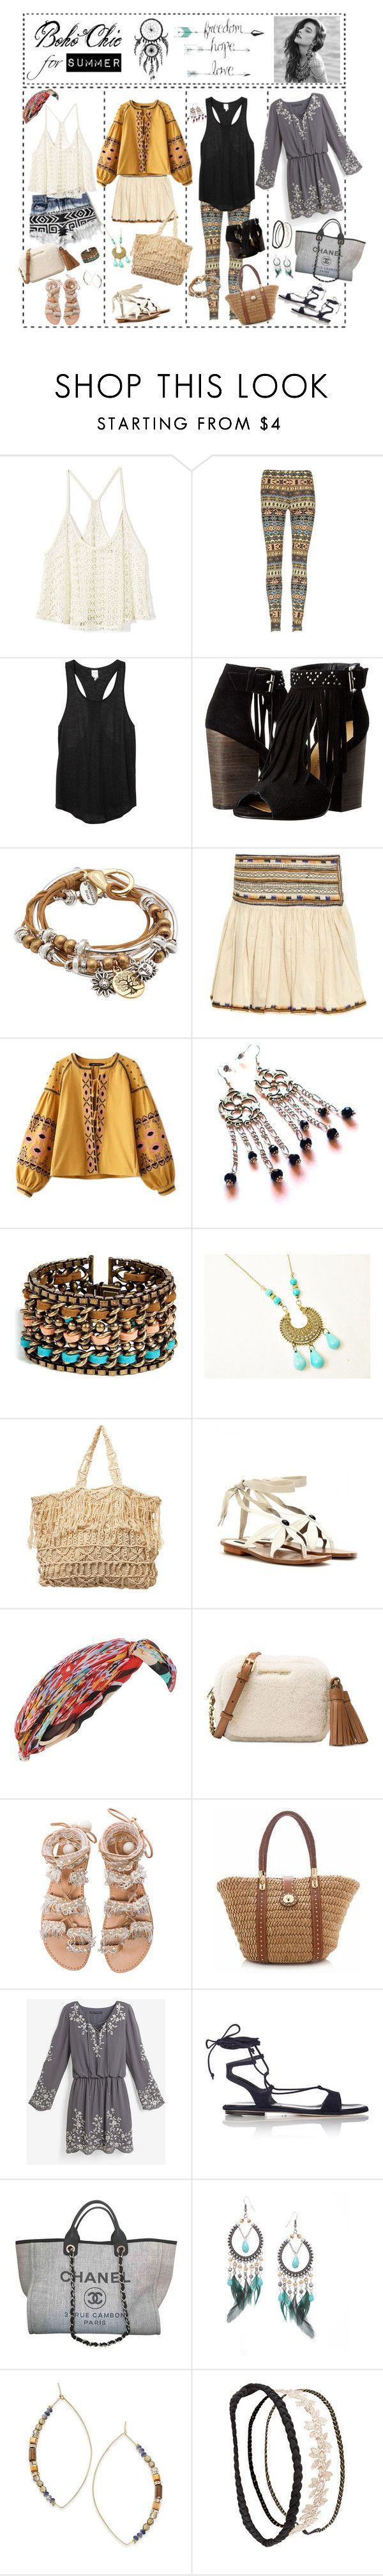 """""""Boho sets for summer girls"""" by phuong-anh-tran-1 ❤ liked on Polyvore featuring Victoria's Secret, Monki, Chinese Laundry, Lizzy James, Isabel Marant, Chicnova Fashion, DANNIJO, Marc Jacobs, Forever 21 and Michael Kors"""